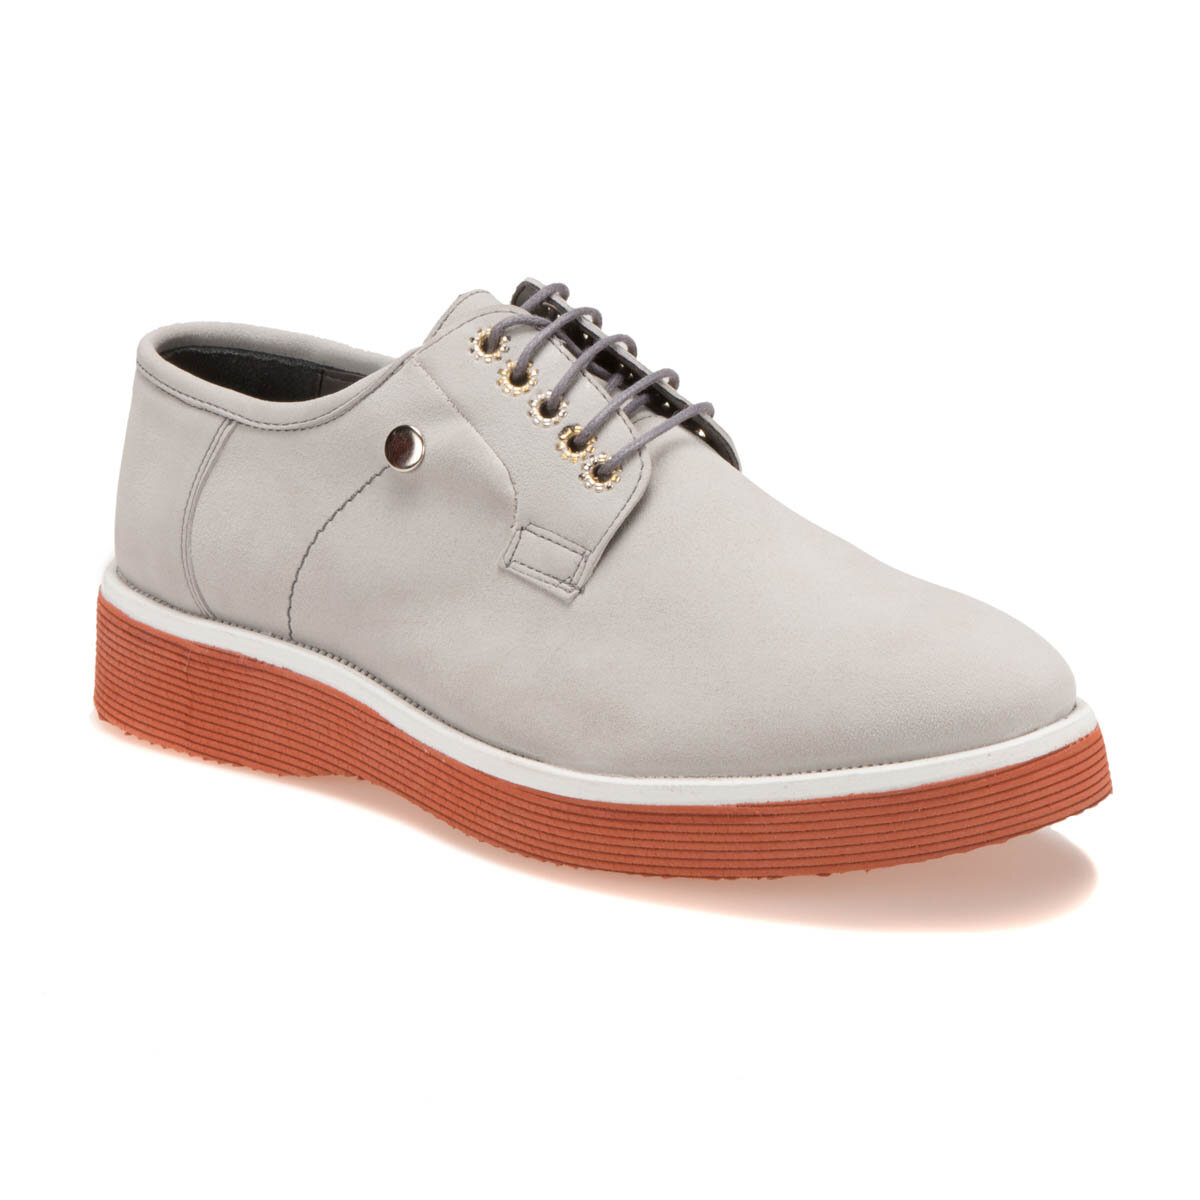 FLO 690-1 M 1506 Gray Men 'S Classic Shoes JJ-Stiller